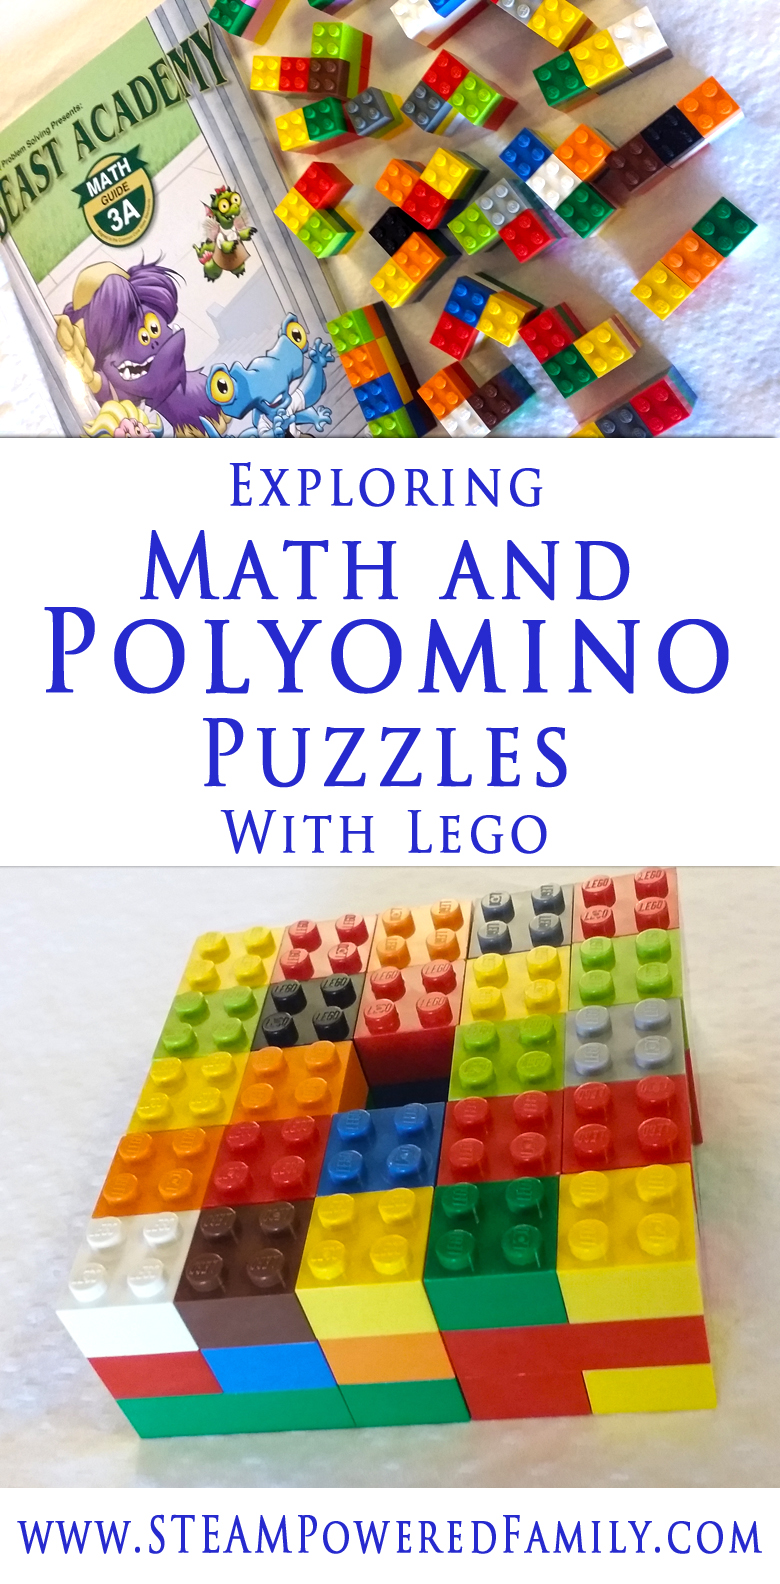 Polyomino Puzzles And Math Made Fun And Easy With Lego